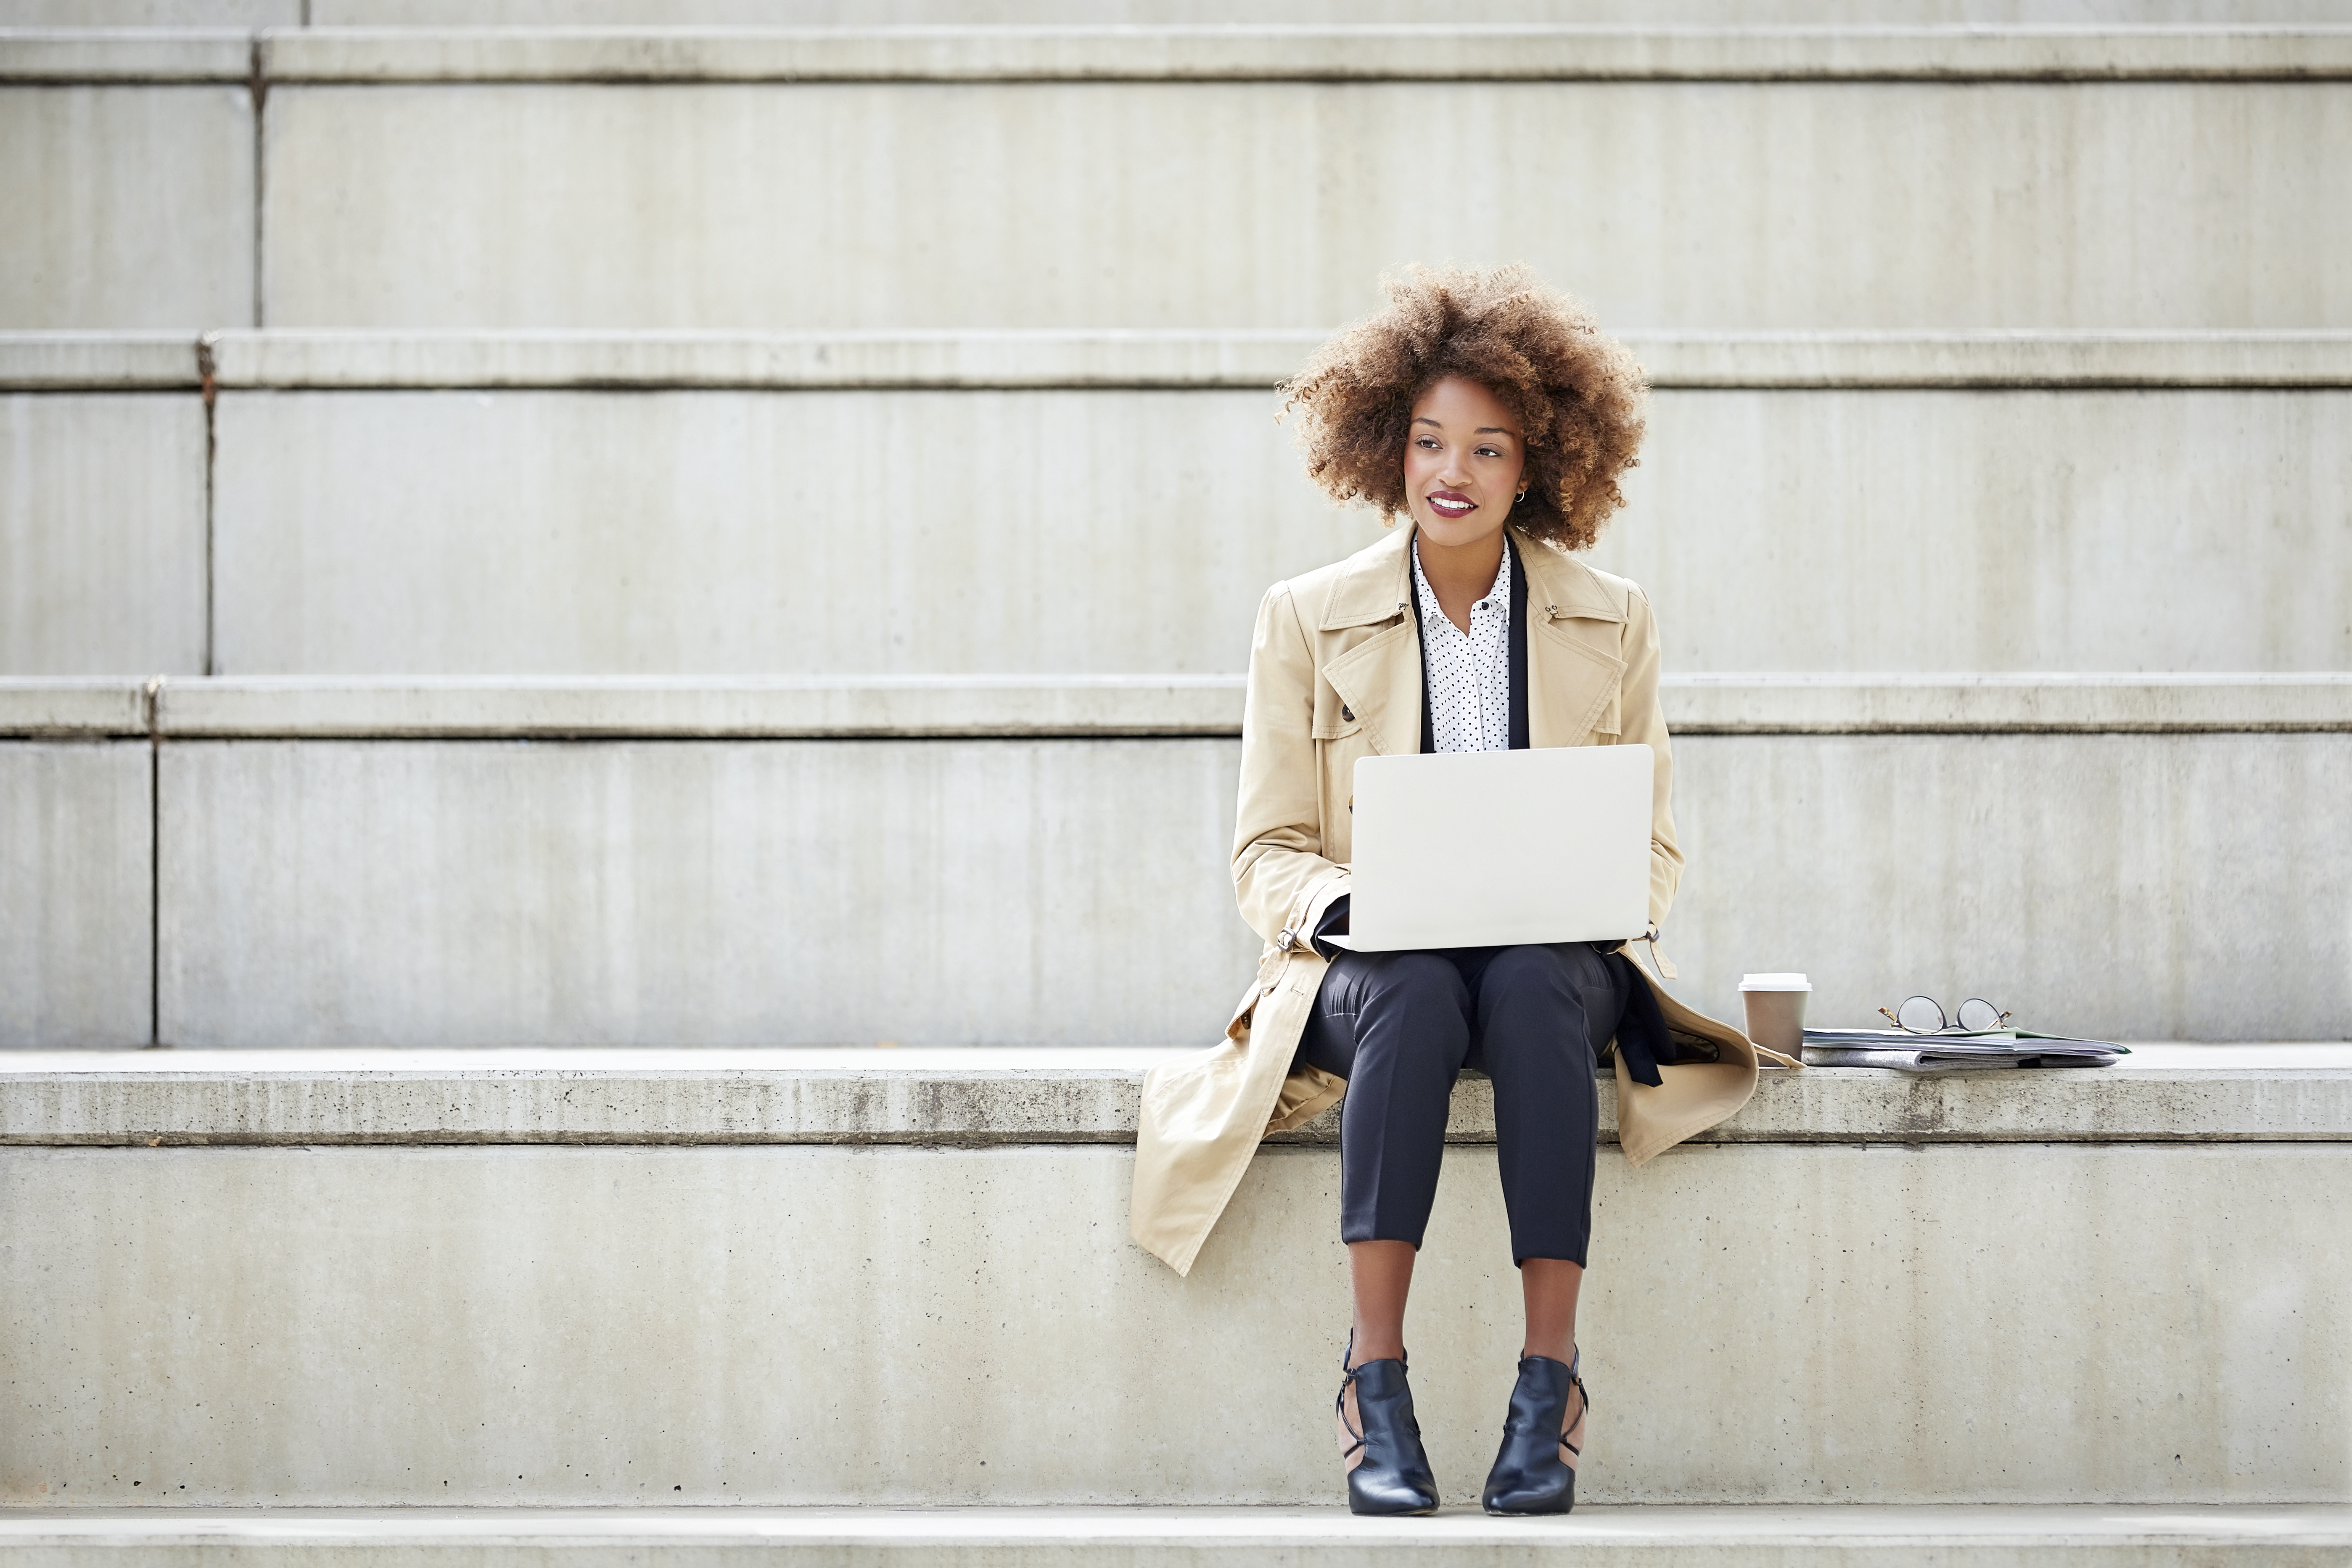 thoughtful-businesswoman-with-laptop-on-steps